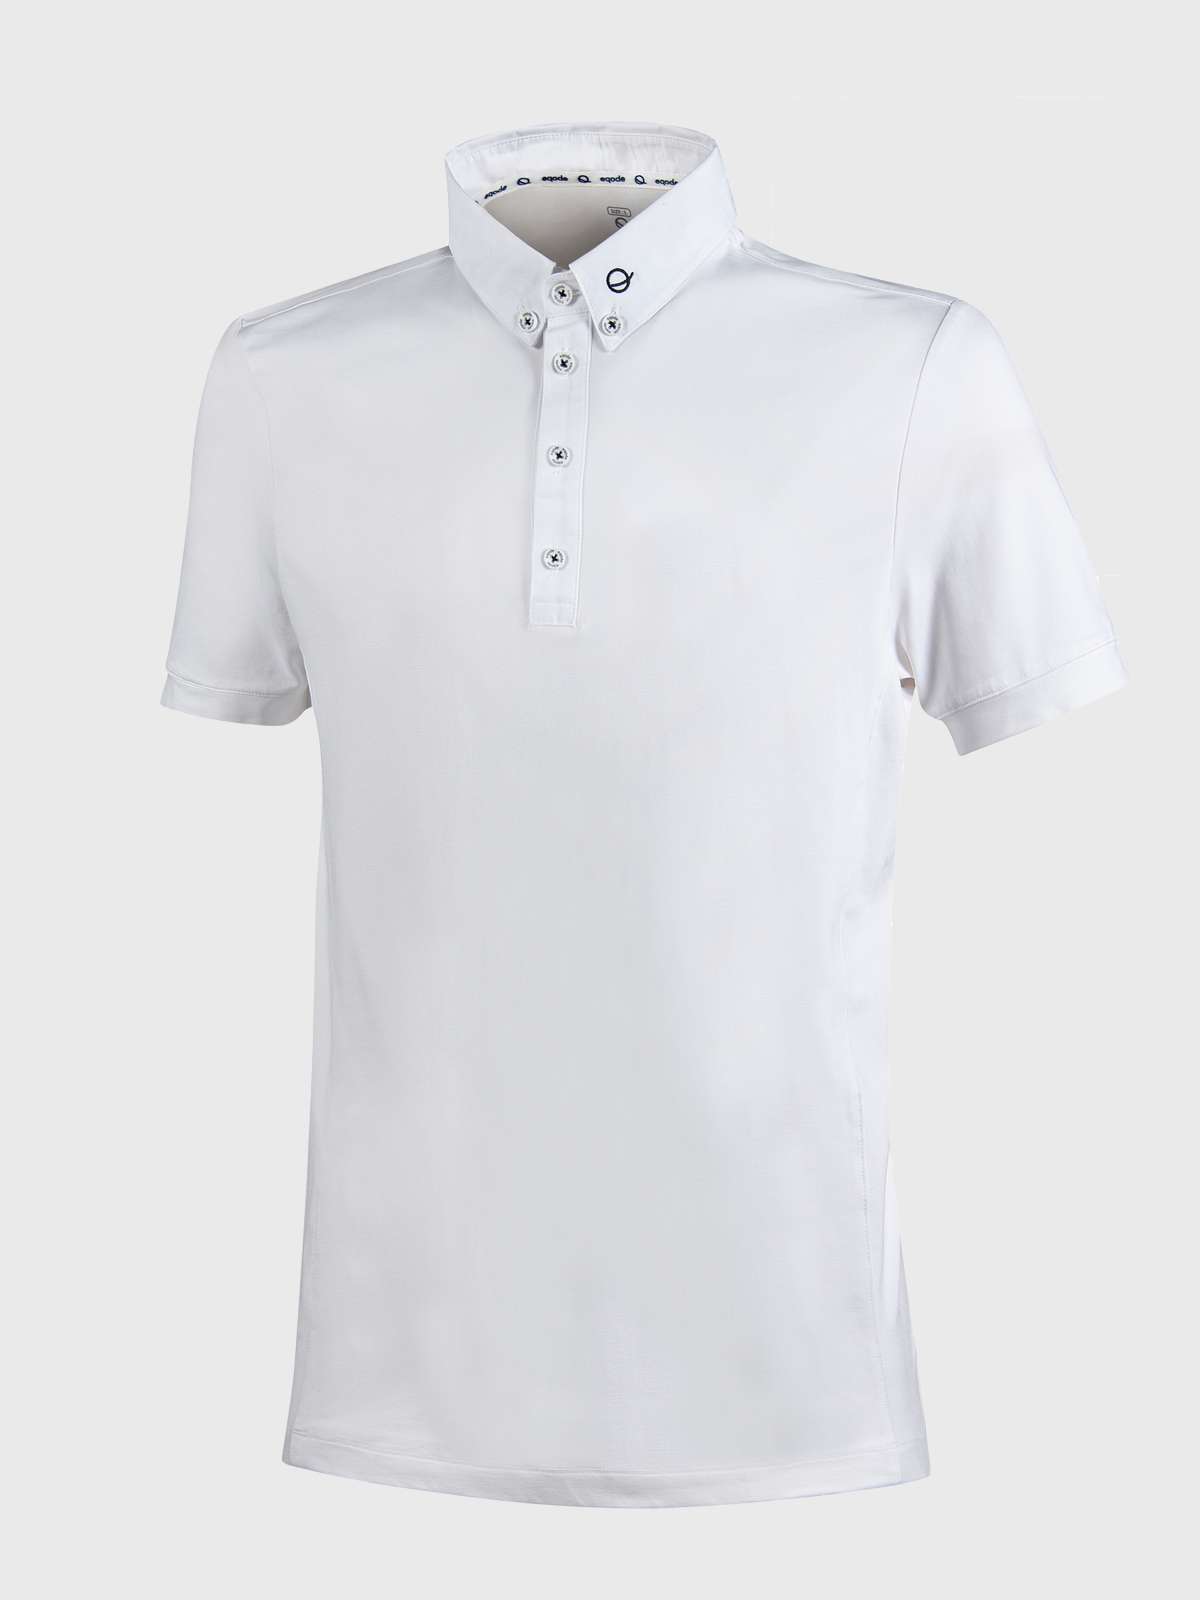 EQODE MEN'S SHORT SLEEVE SHOW SHIRT 1